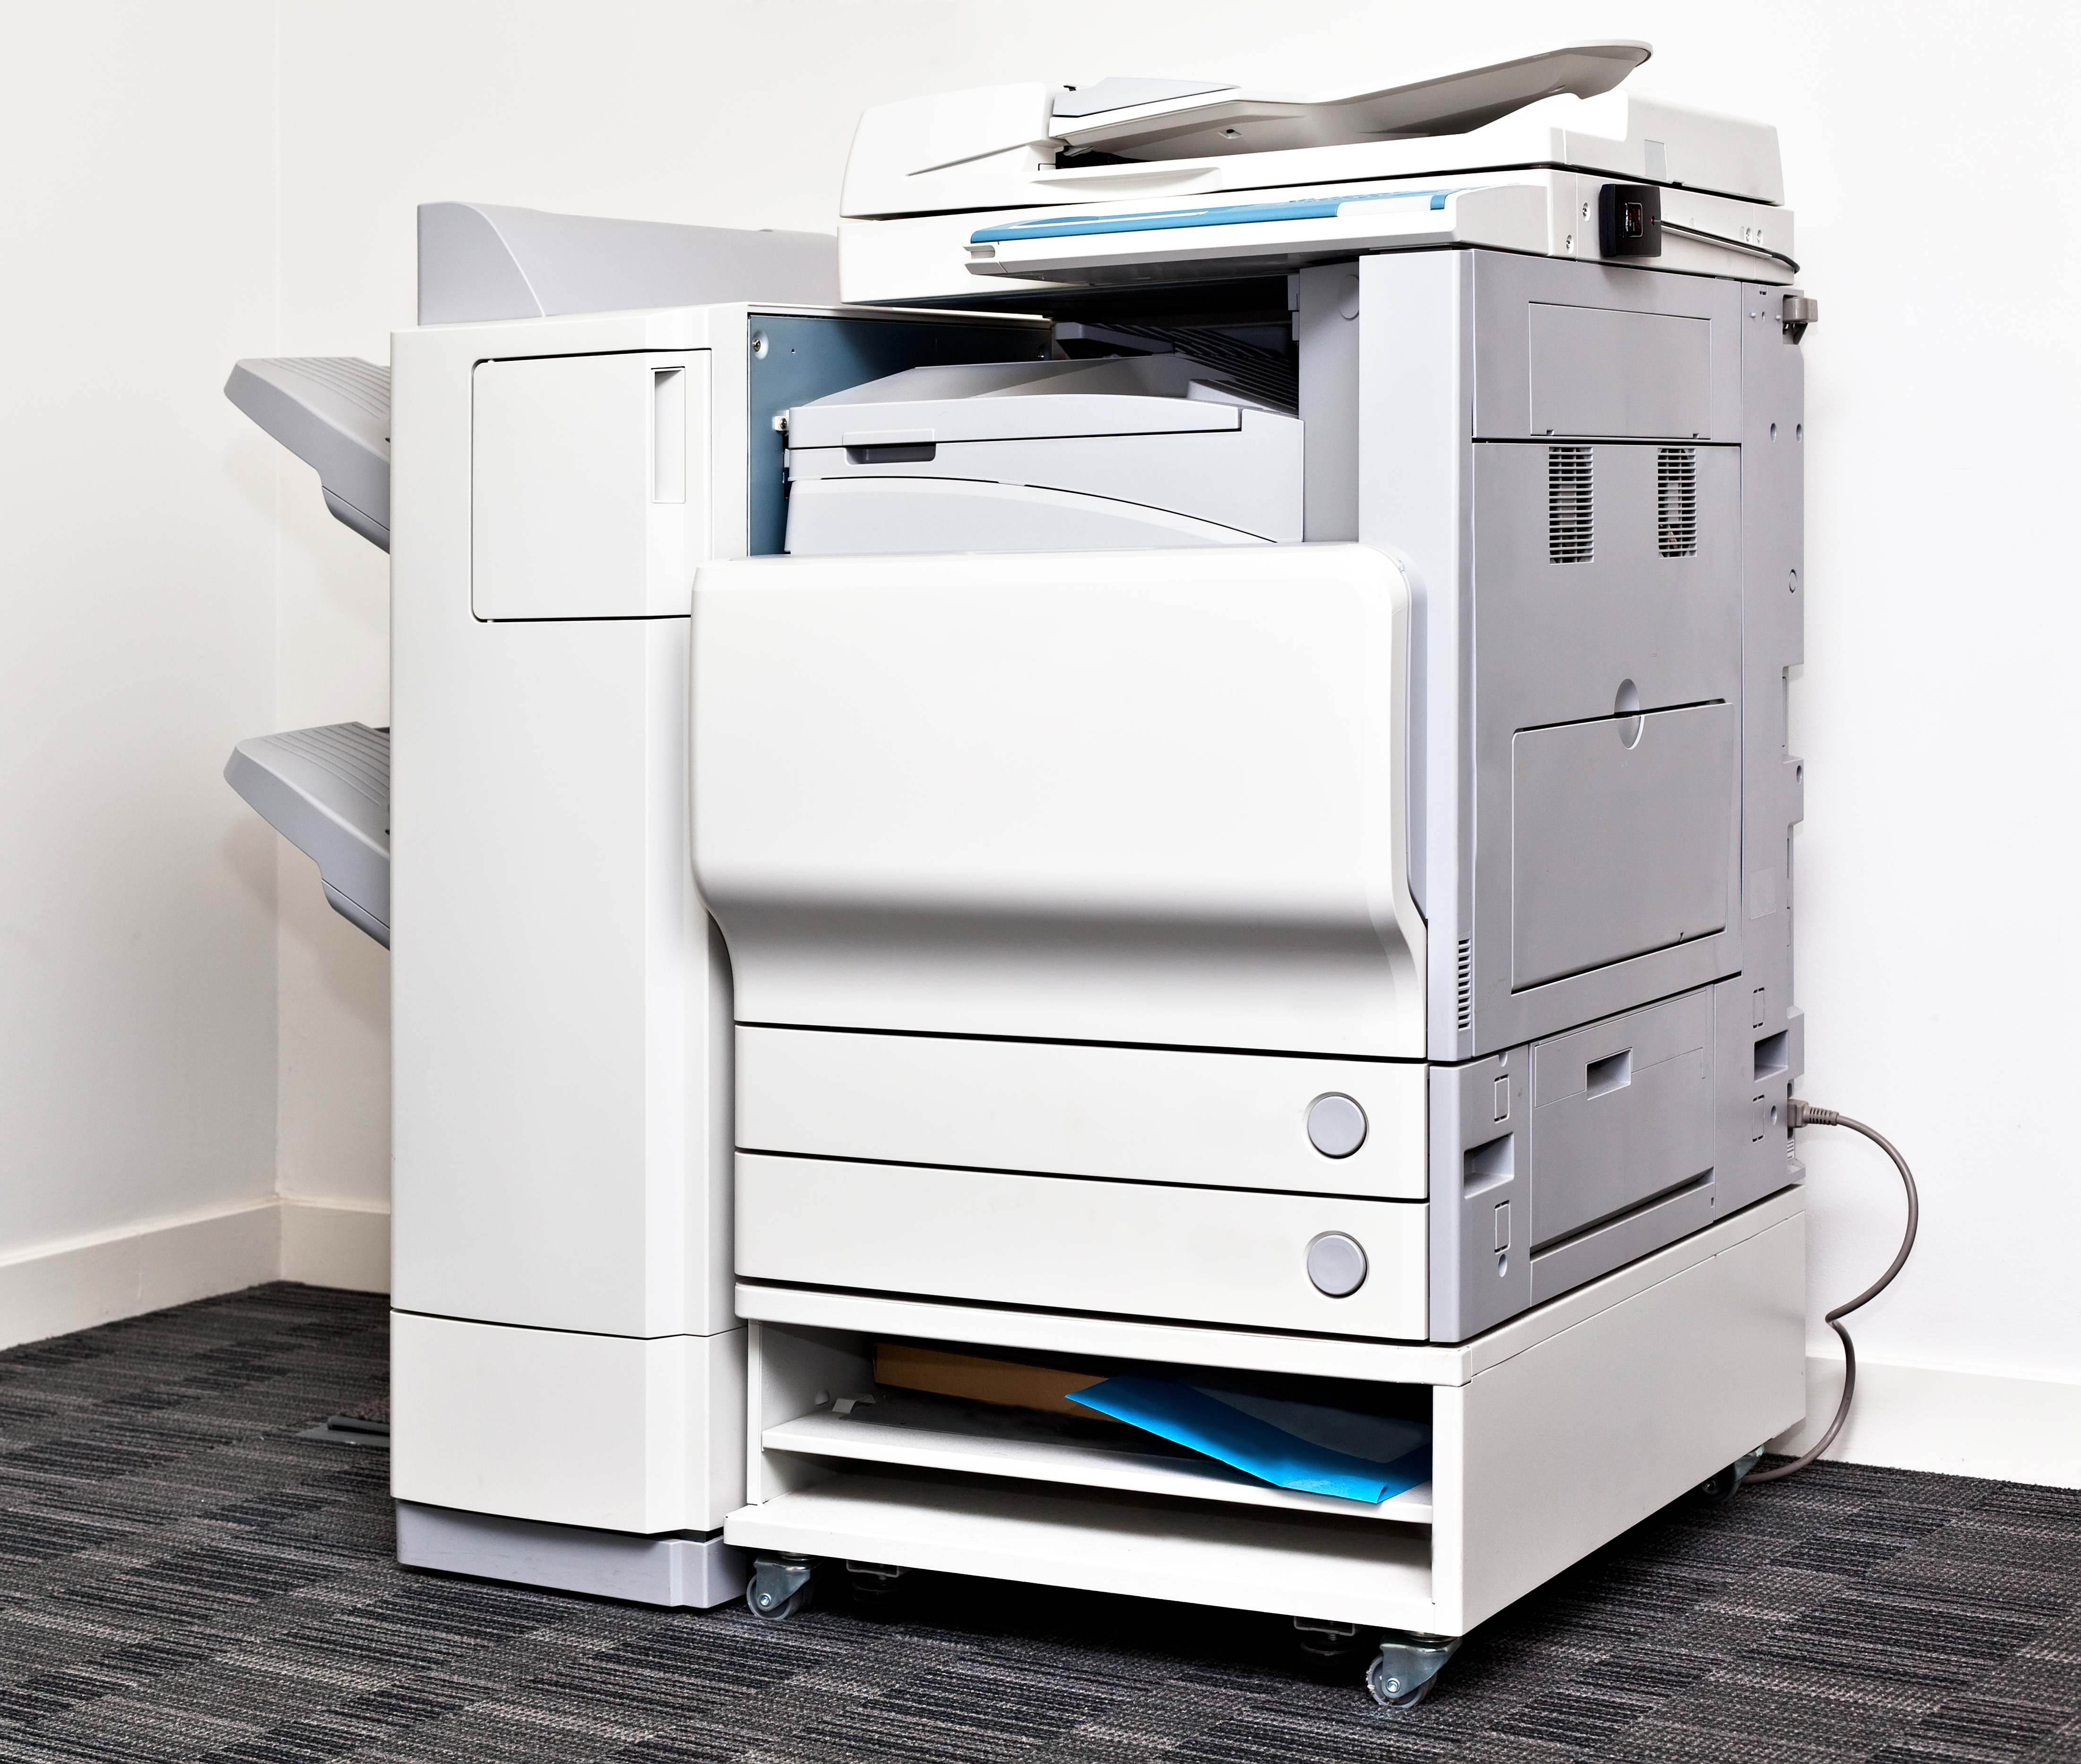 The Office People Offers Printer Repair Services In Greater Charleston. Reach us at 843-769-7774